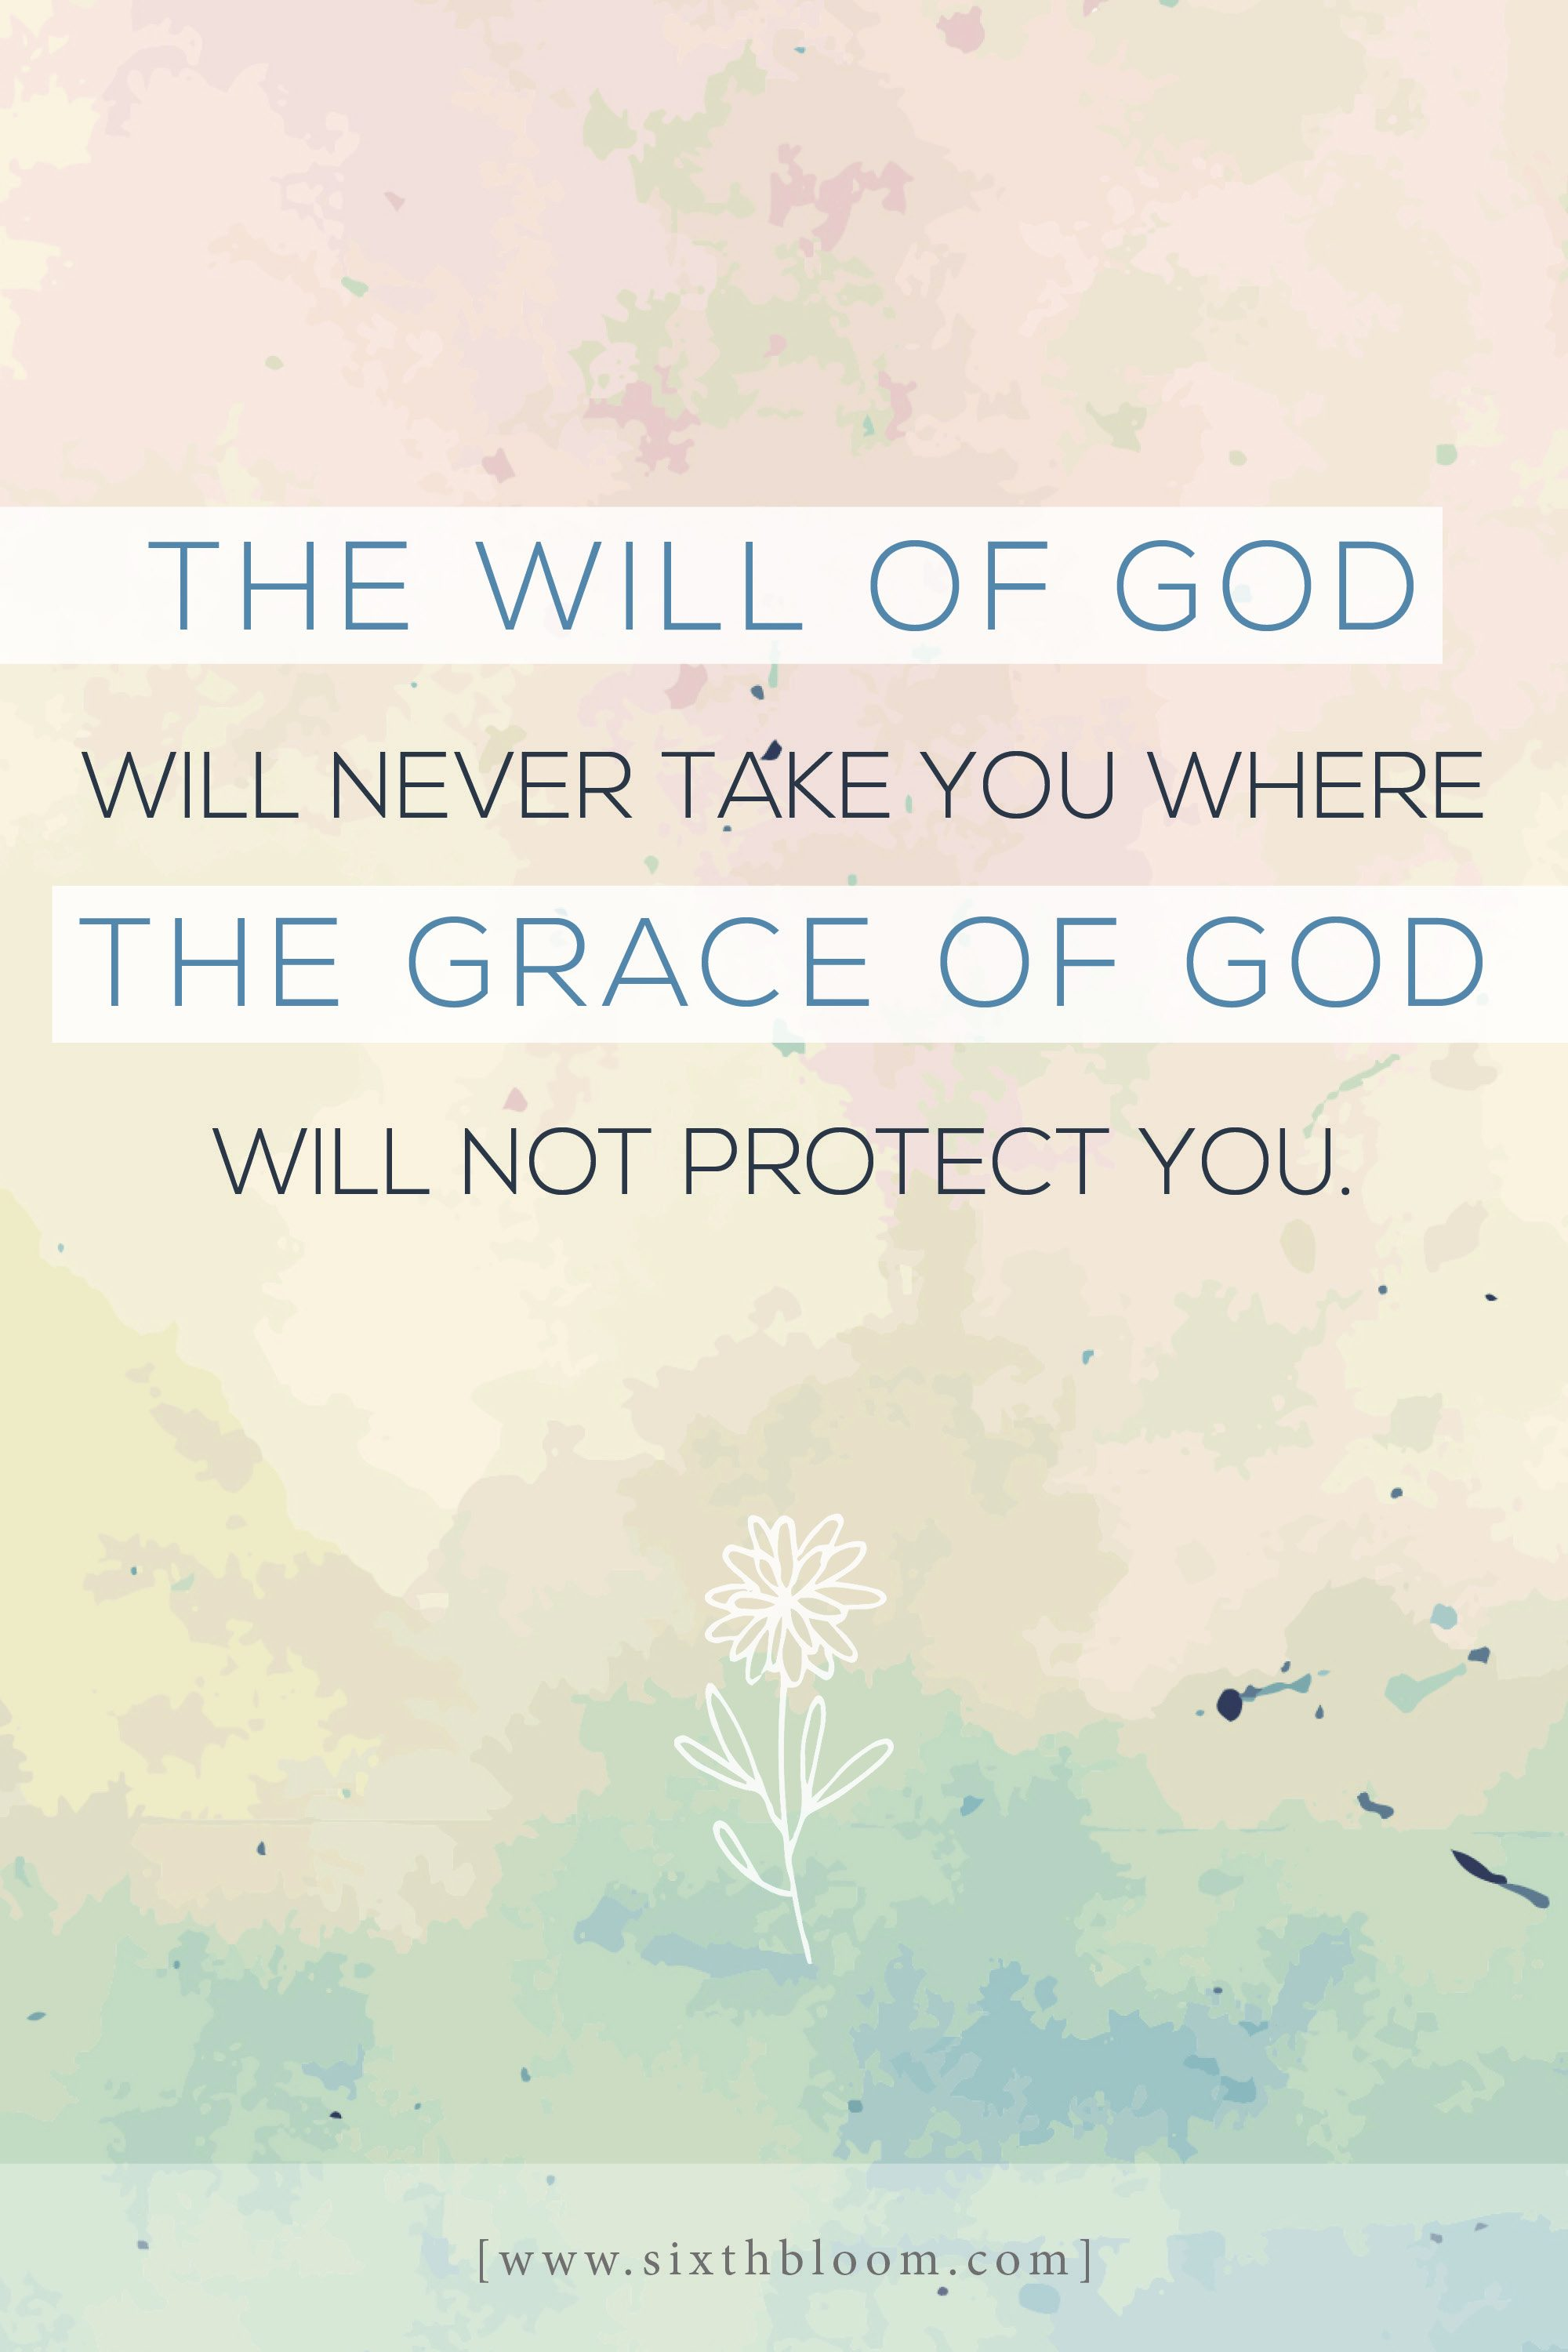 The will of God will never take you where the grace of God will not protect you